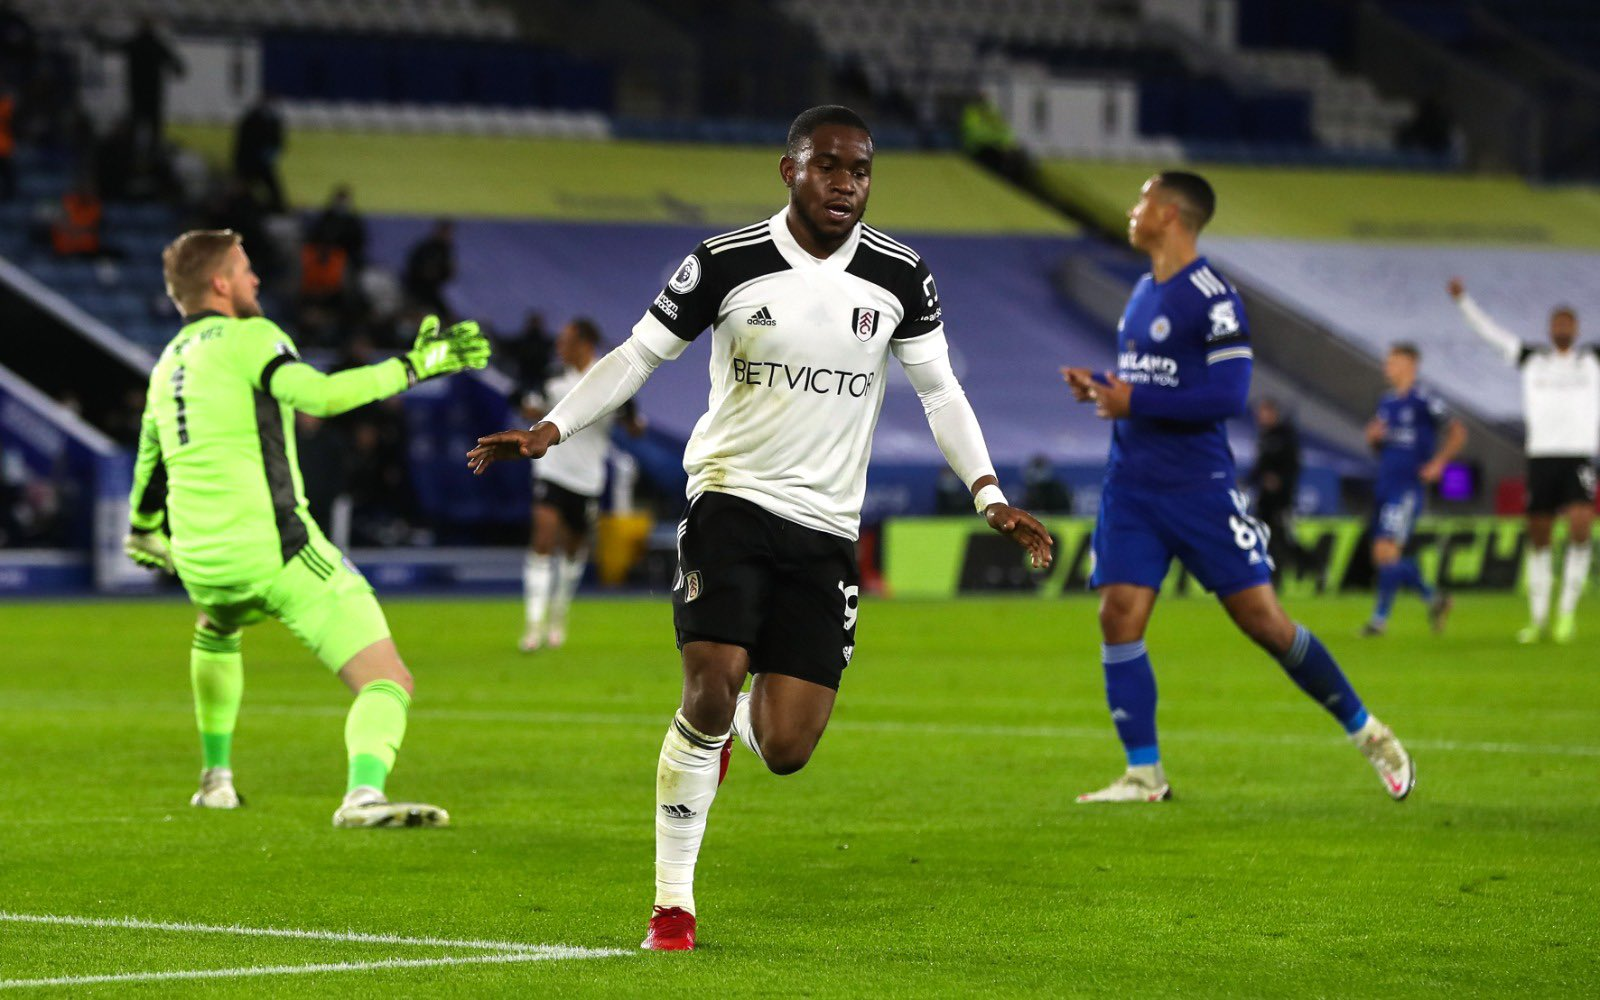 Fulham Boss Parker Praises 'Courage' Of Lookman, Cavaleiro  After Vital Win At Leicester